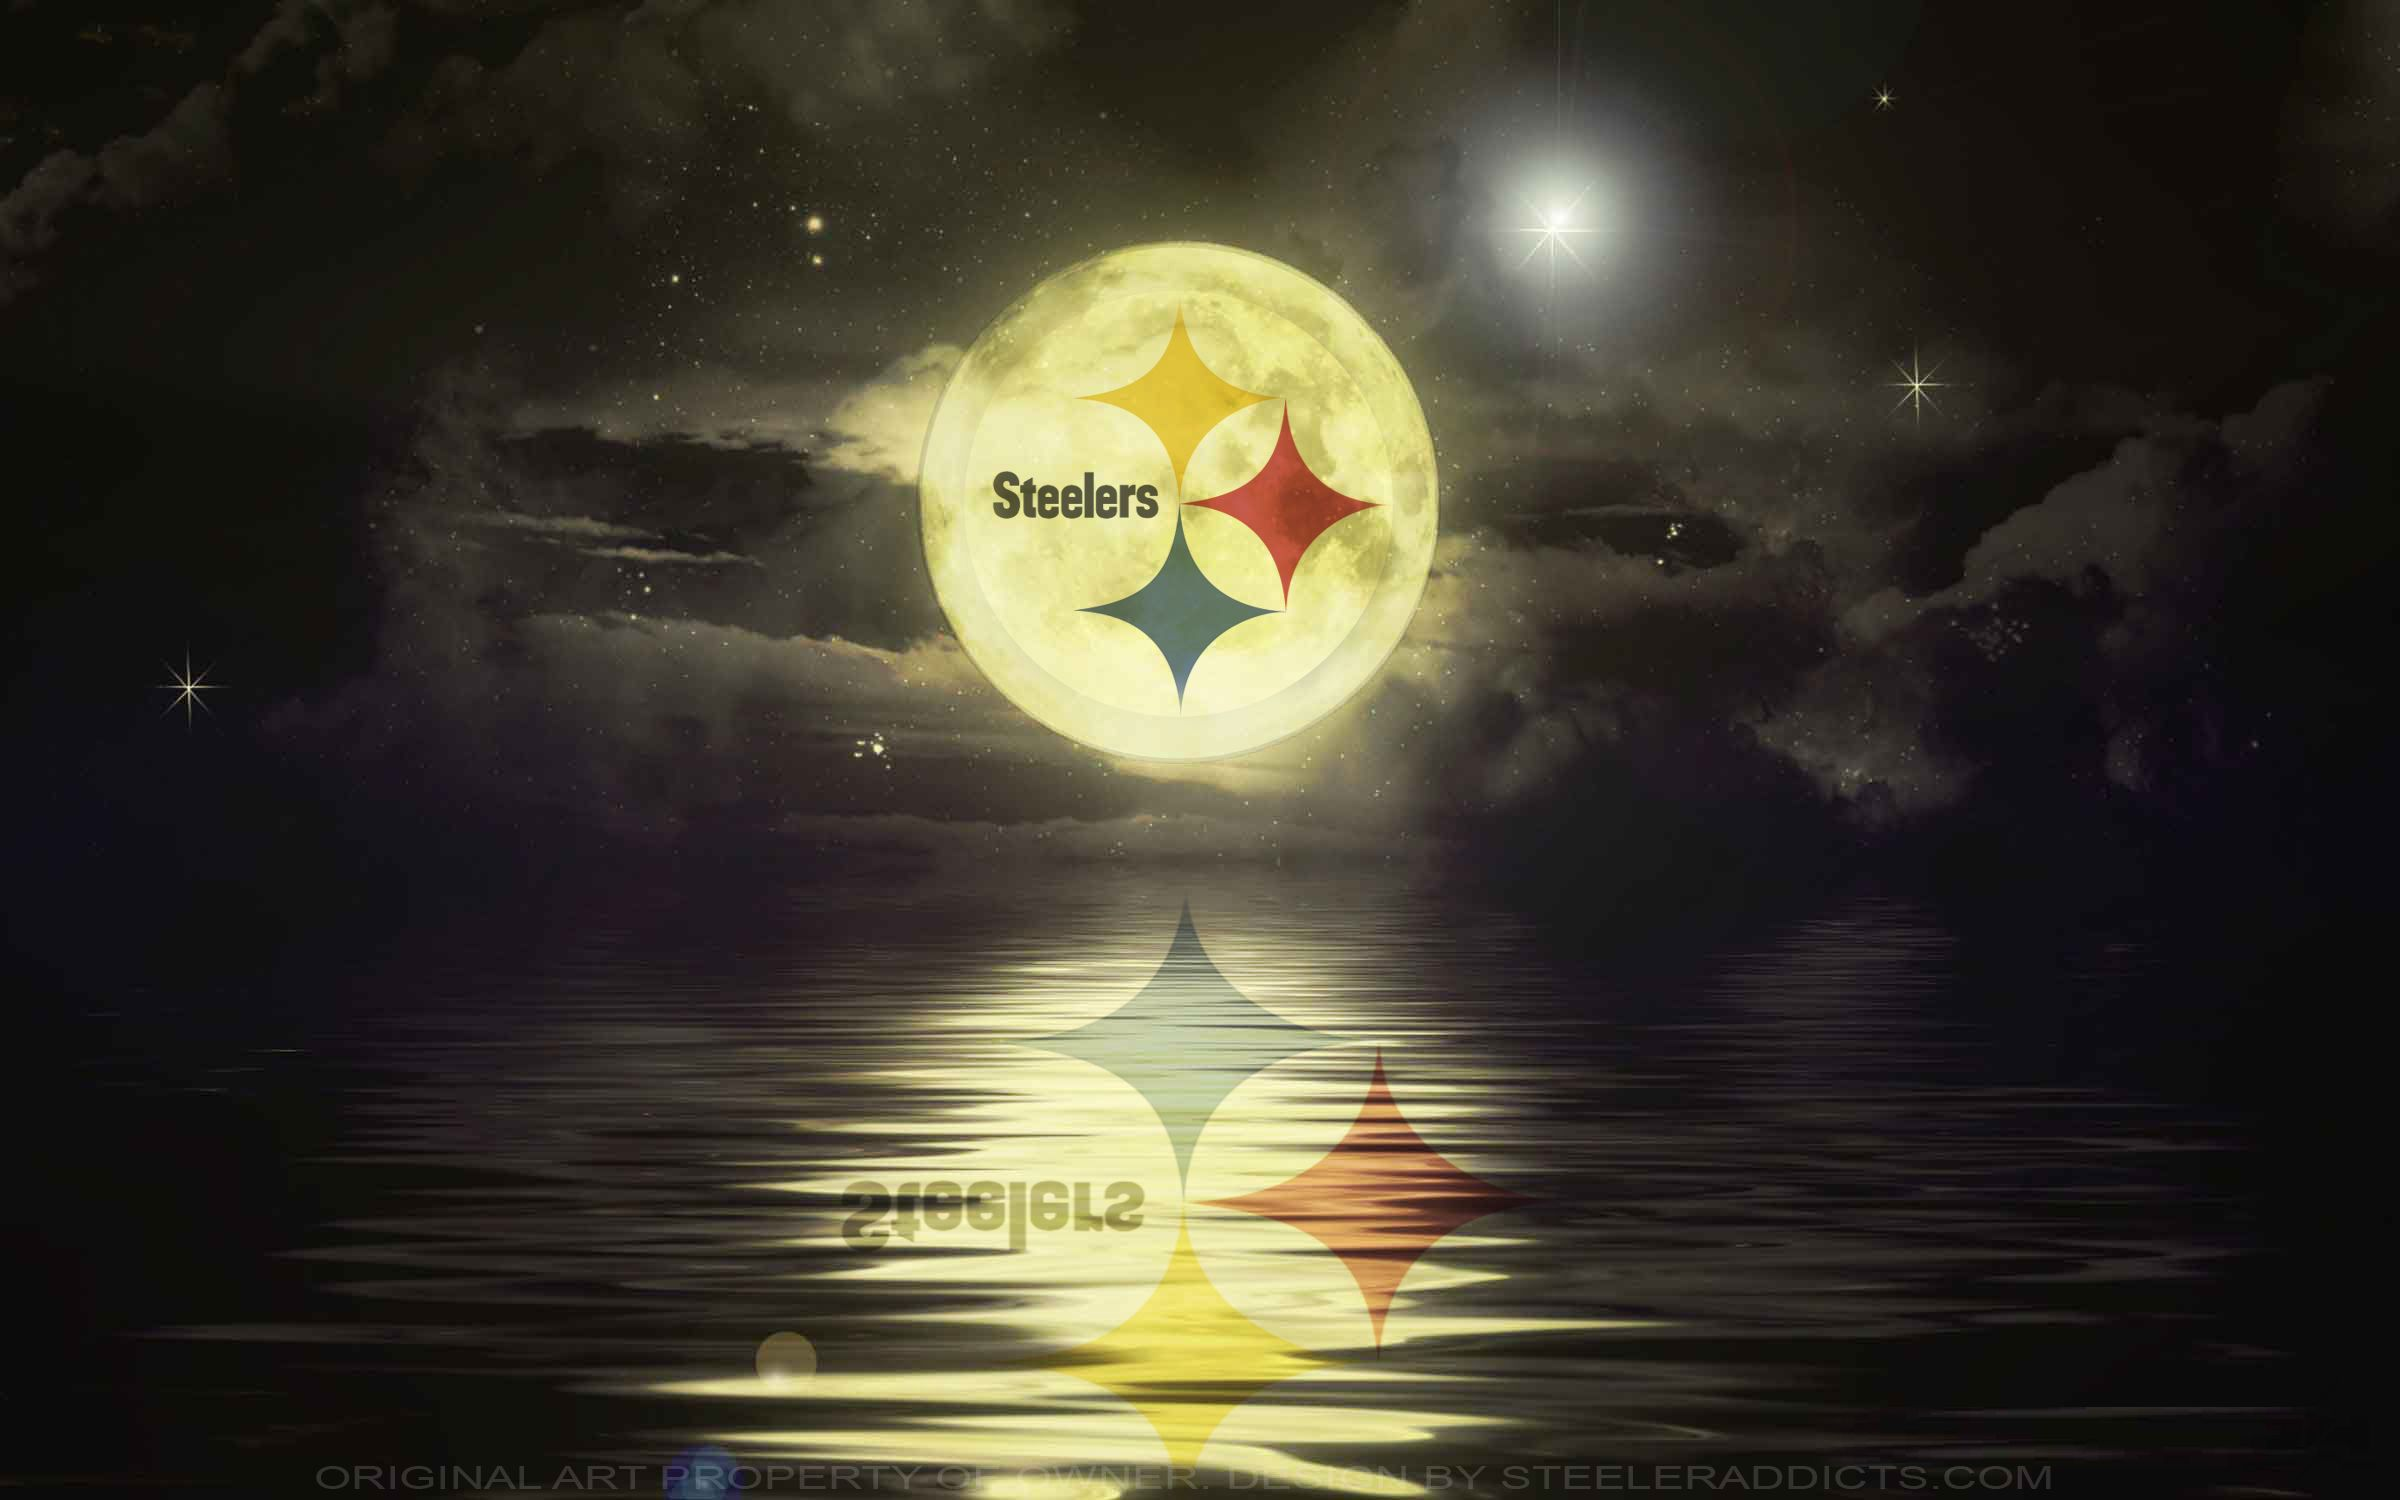 BEST FULLMOON EVER … Pittsburgh steelers logo